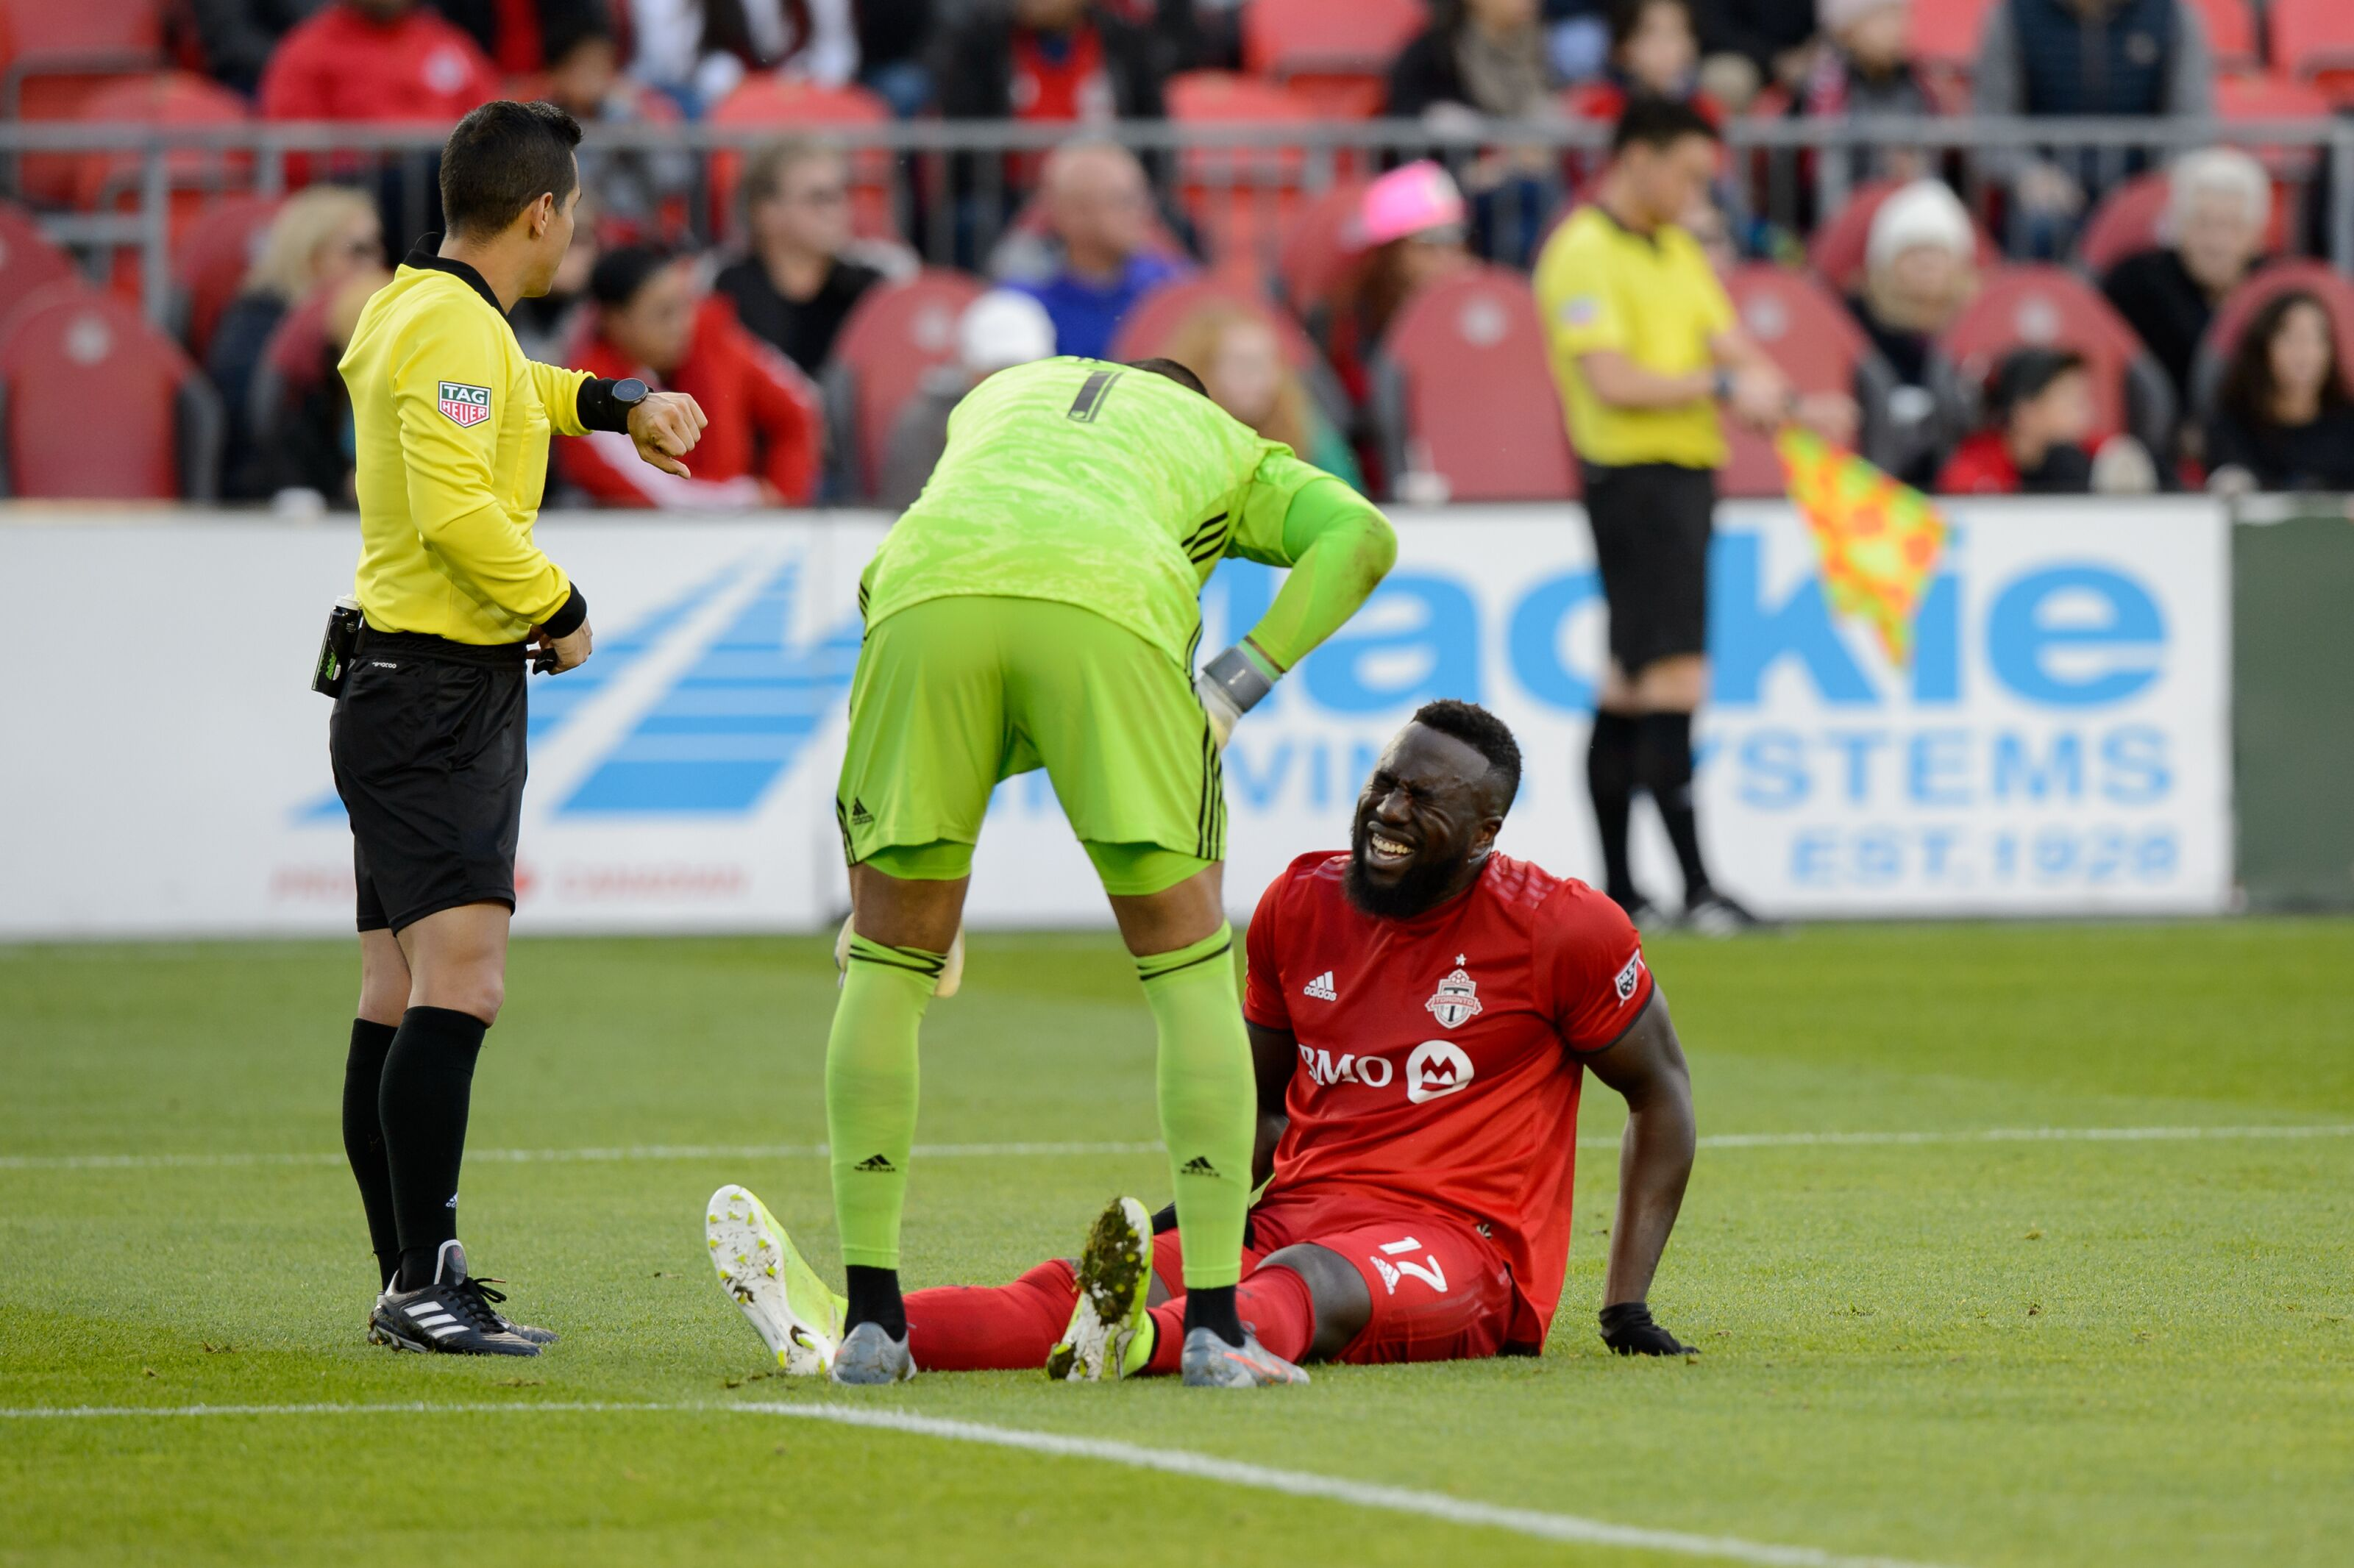 Toronto FC: Jozy Altidore departure positively ruthless